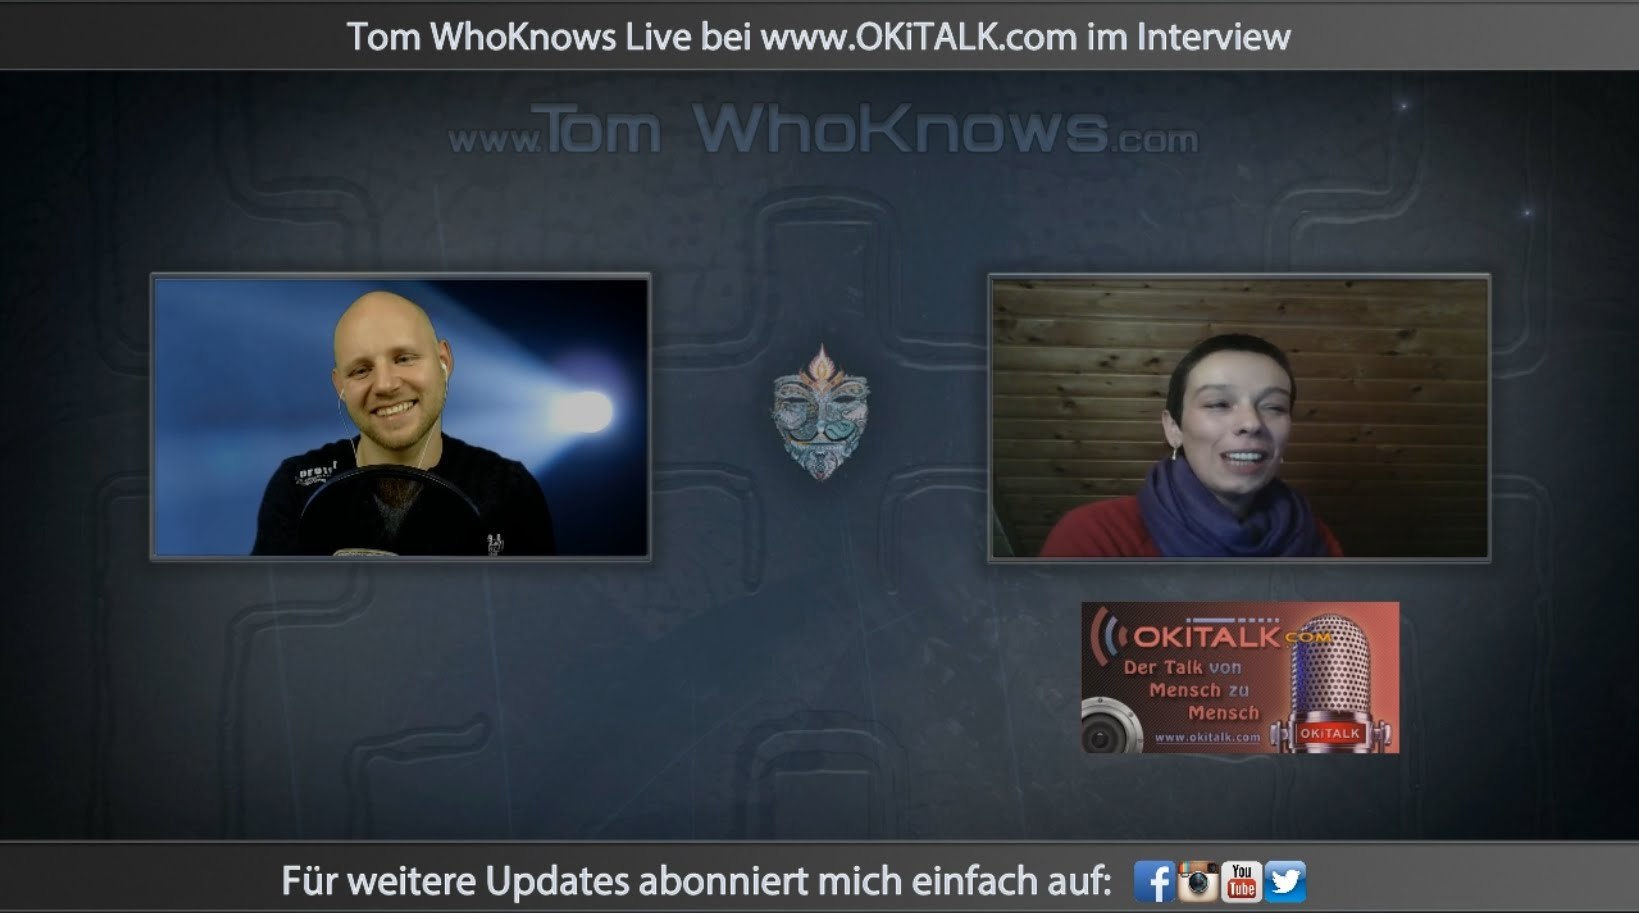 Tom WhoKnows Interview bei www.OKiTALK.com 07.01.2016